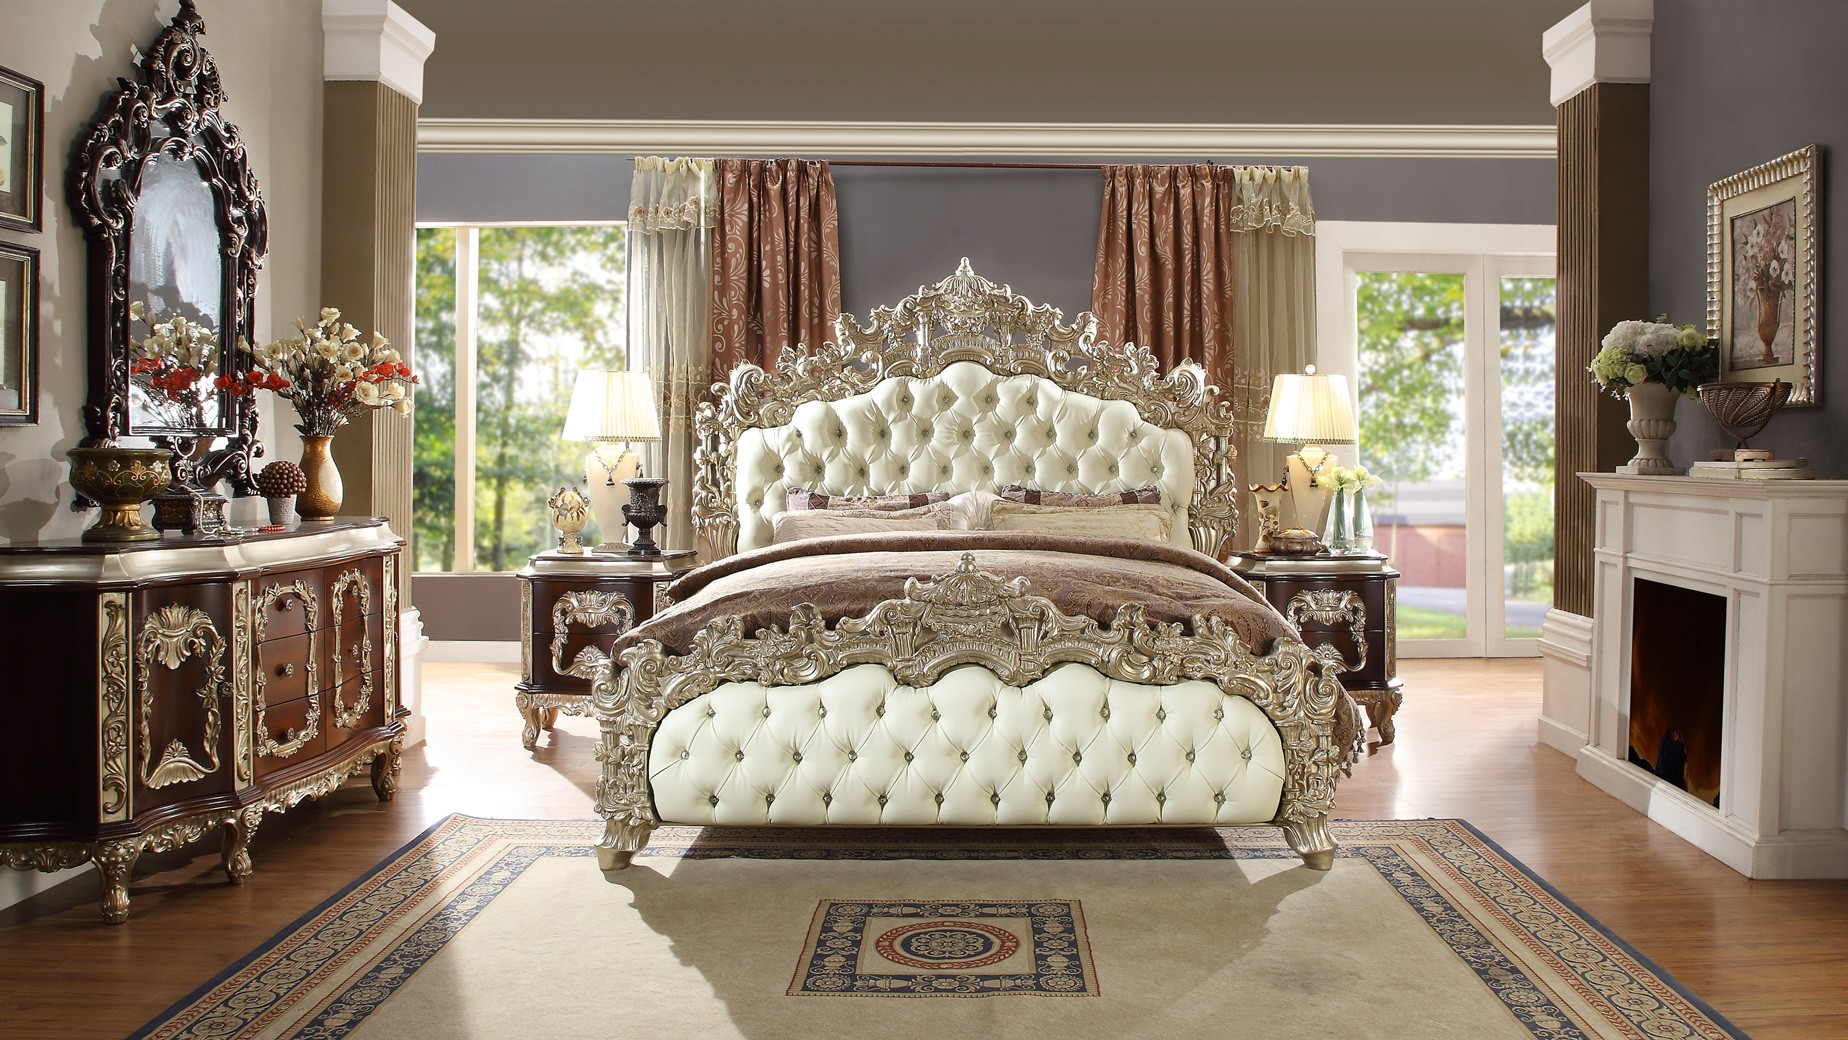 Phenomenal Hd 8017 Homey Design Bedroom Set Victorian European Classic Design Interior Design Ideas Ghosoteloinfo